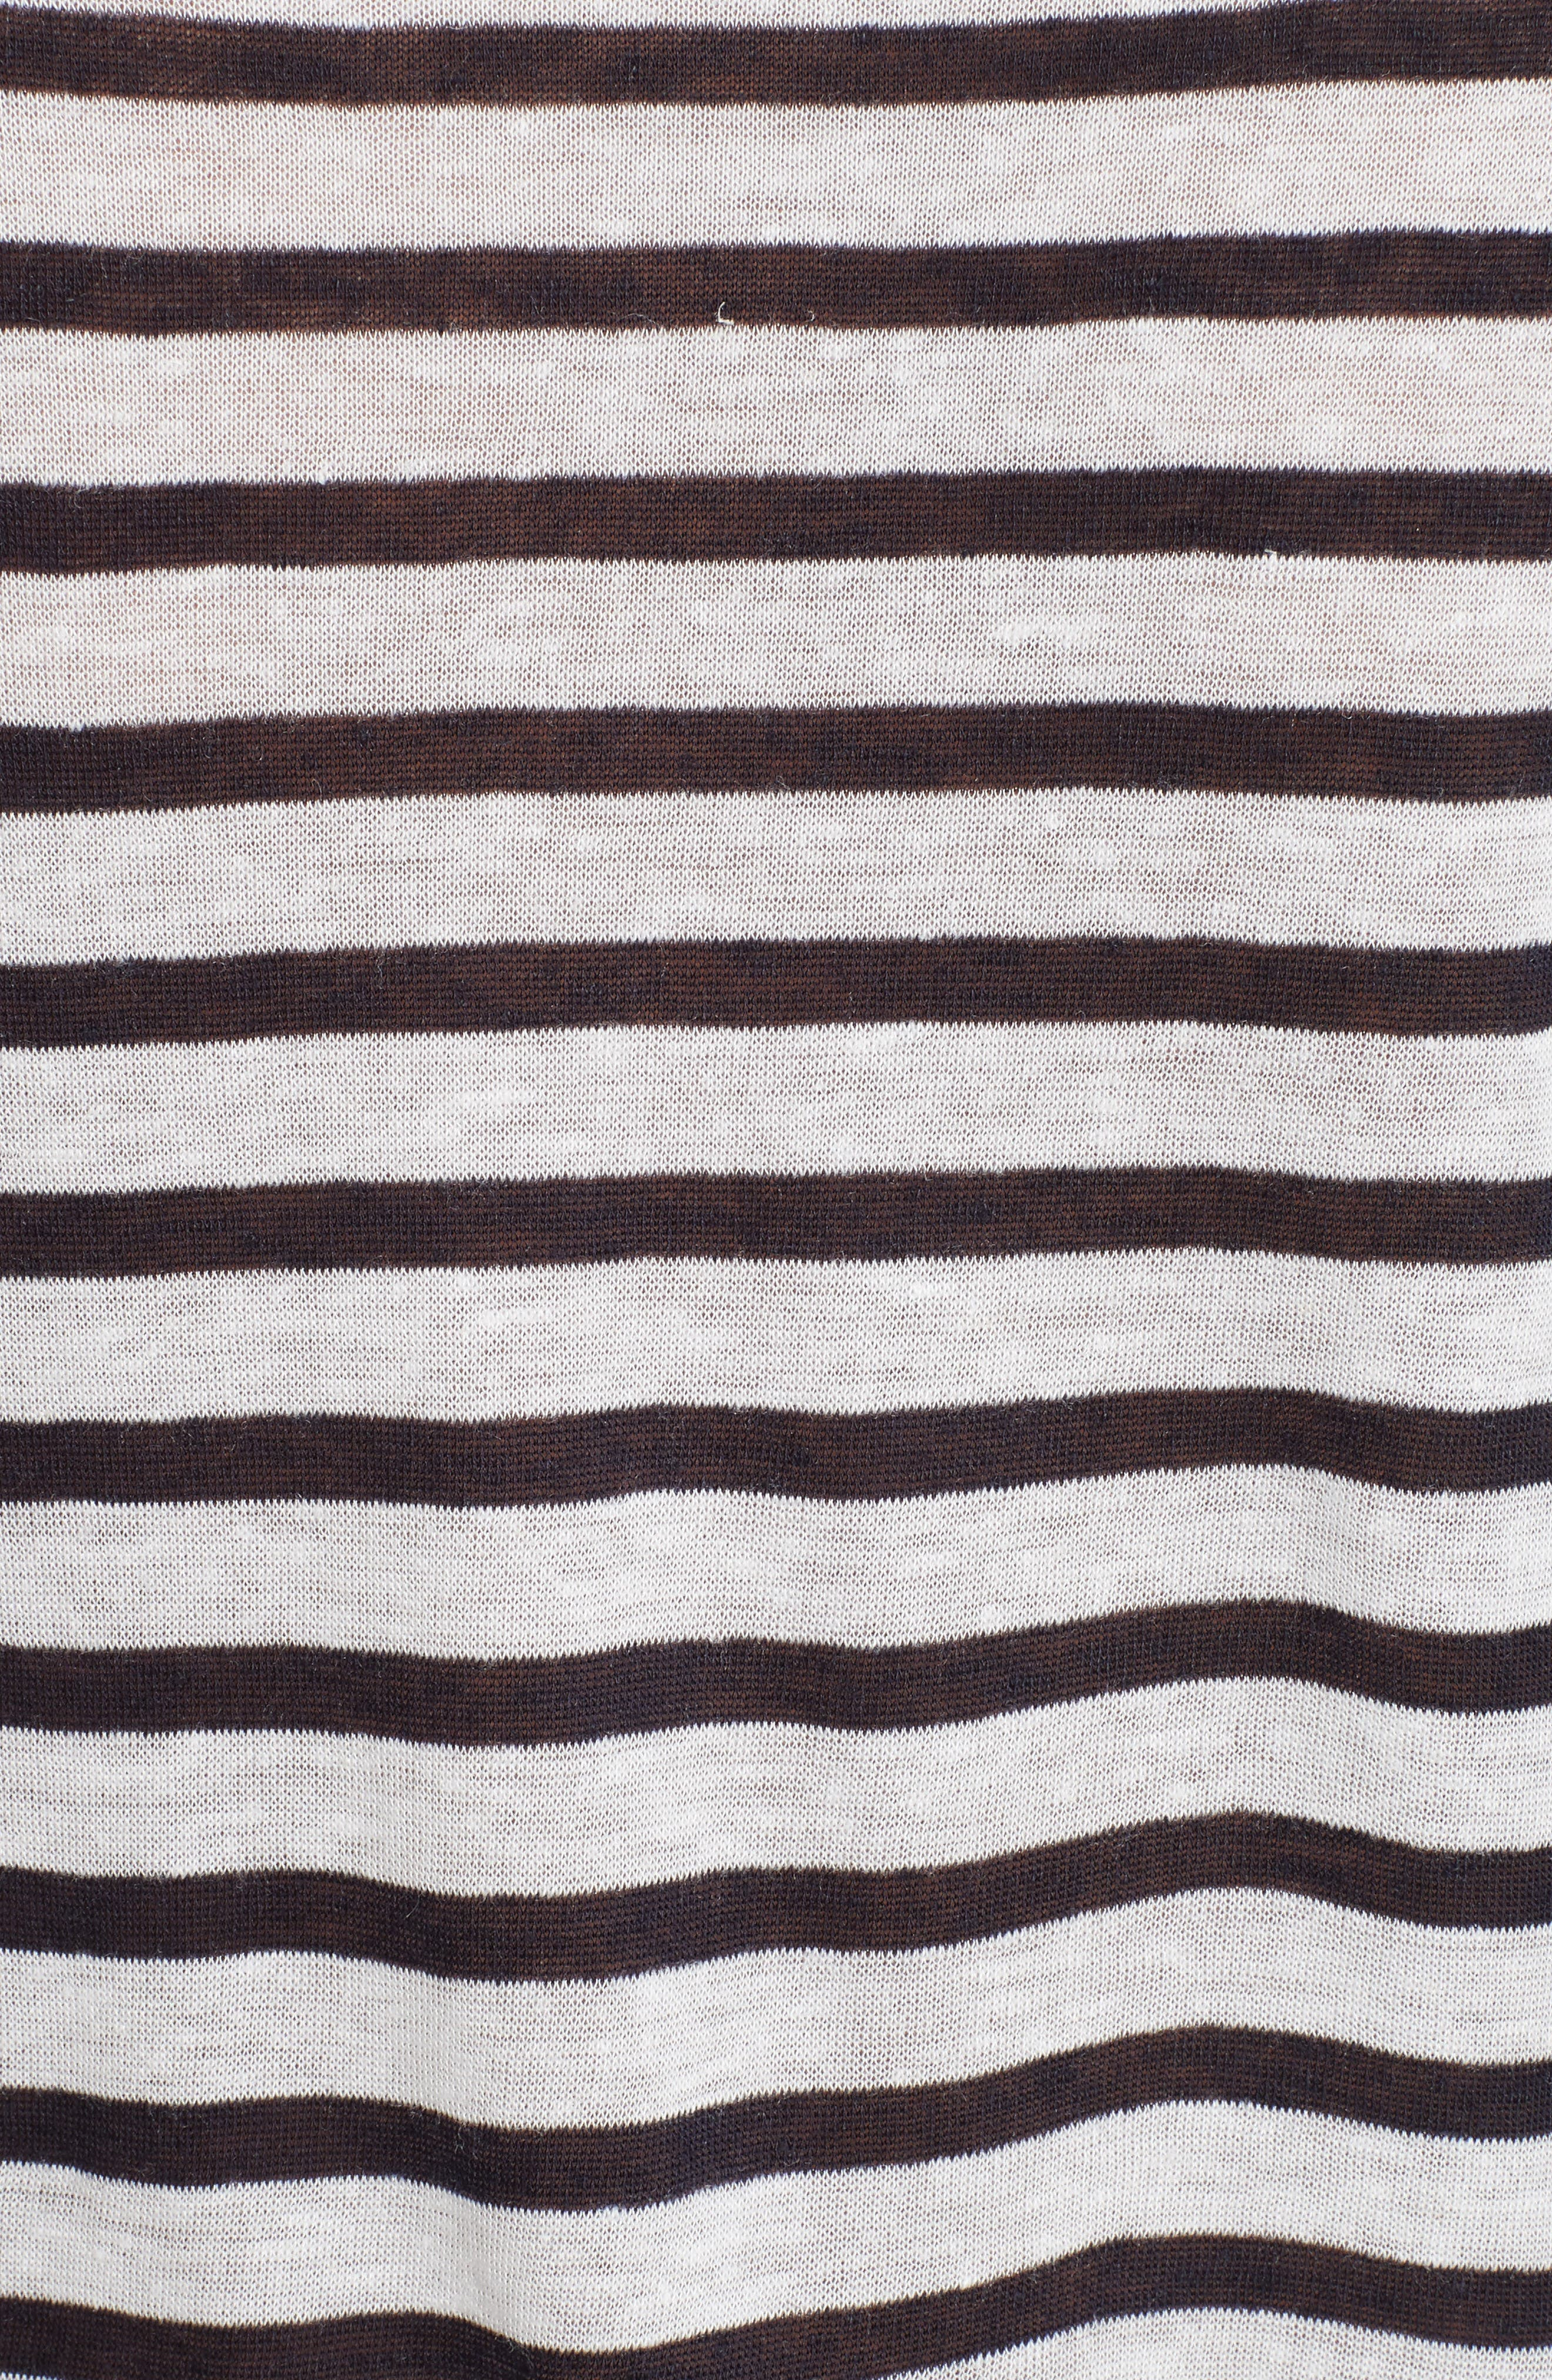 Stripe Tee,                             Alternate thumbnail 5, color,                             Ink And Ivory